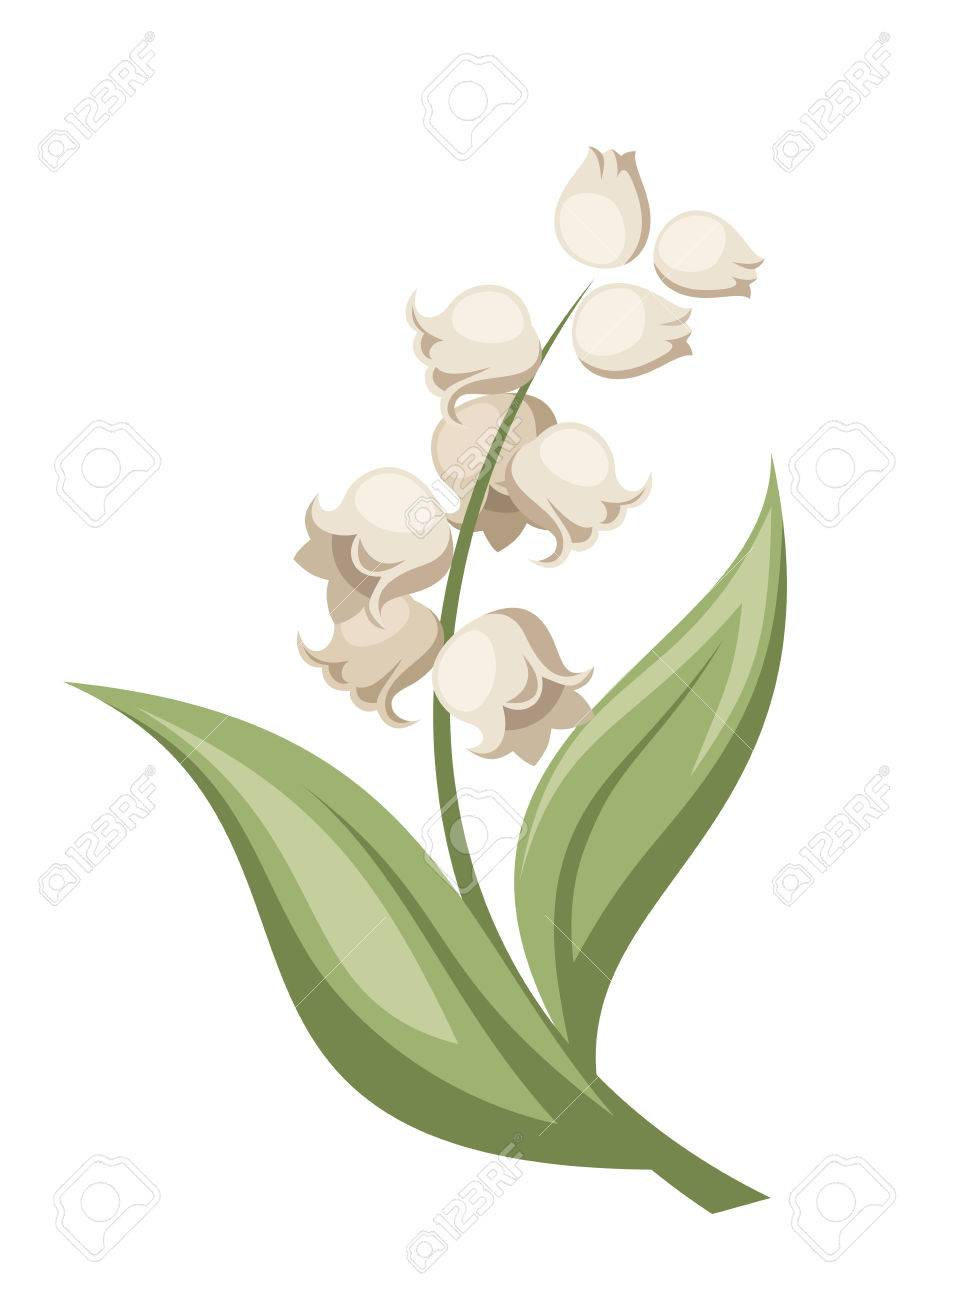 Lily of the valley flower Vector illustration Stok Fotoğraf - 27333211